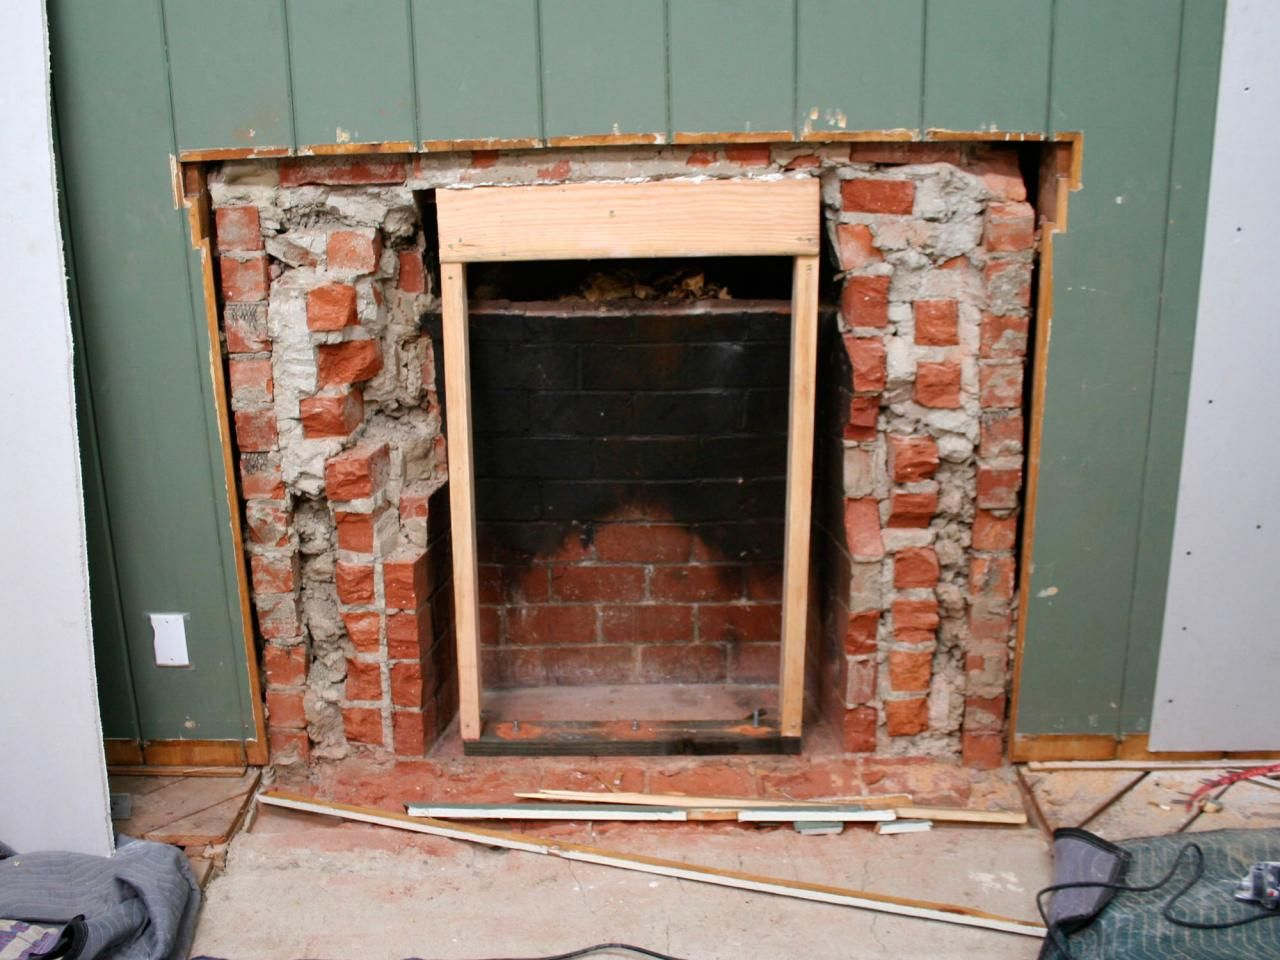 Cover Brick Fireplace With Wood Panels Removing A Brick Fireplace Brick Fireplace Spaces And